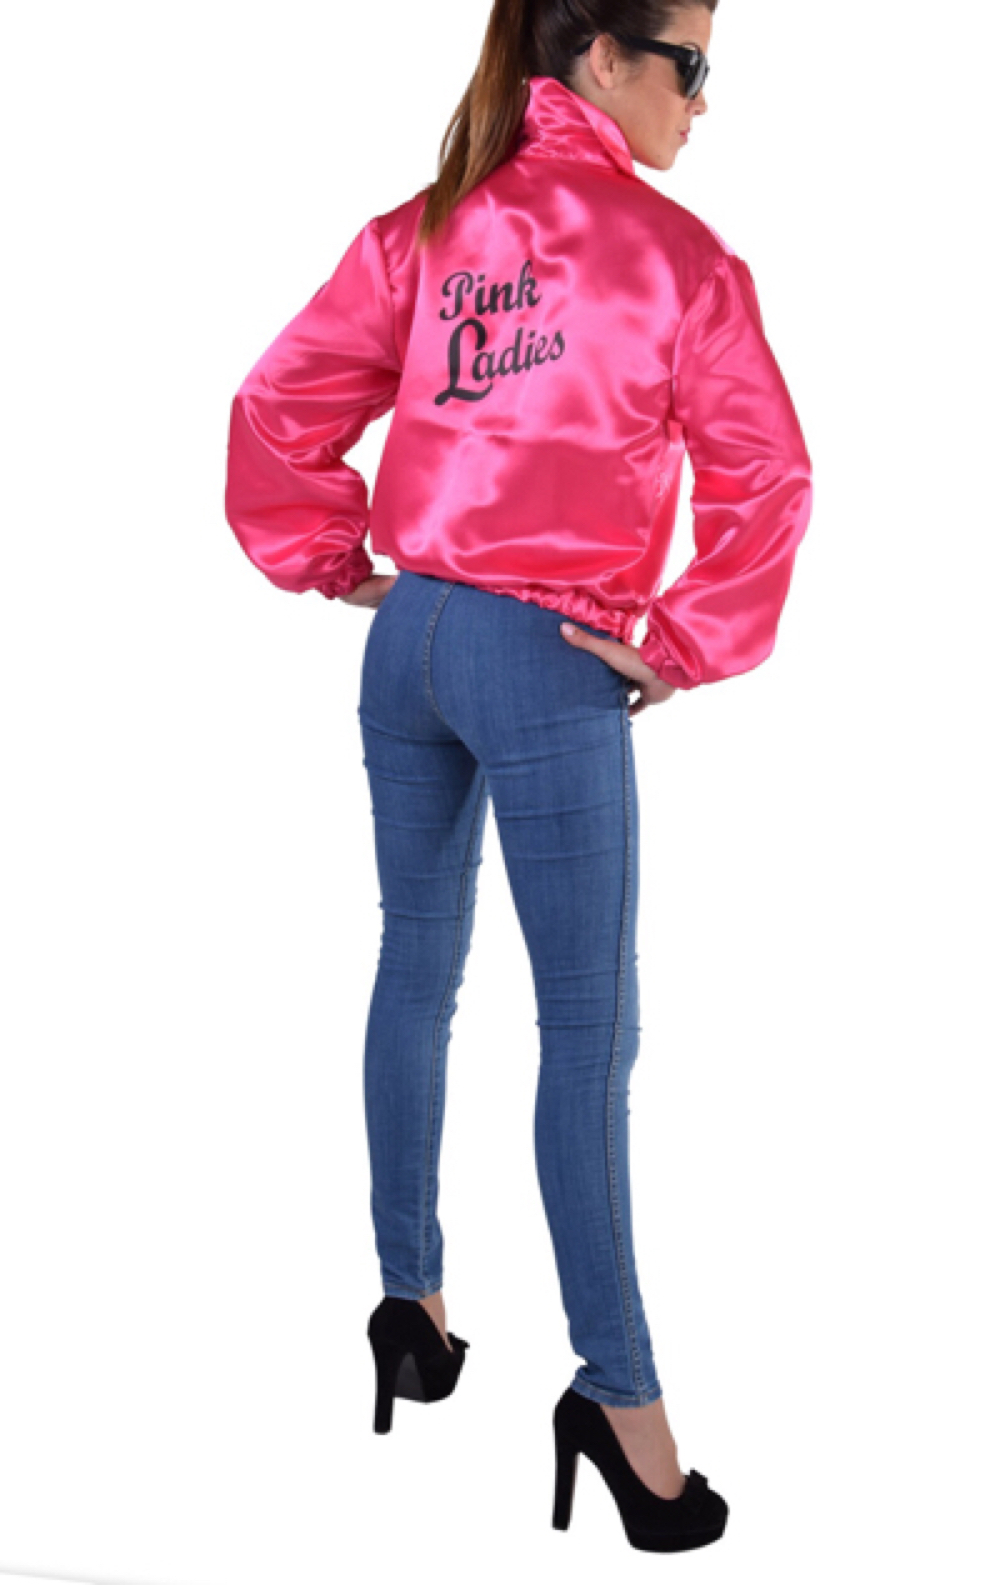 Pink Lady - Grease Jackets